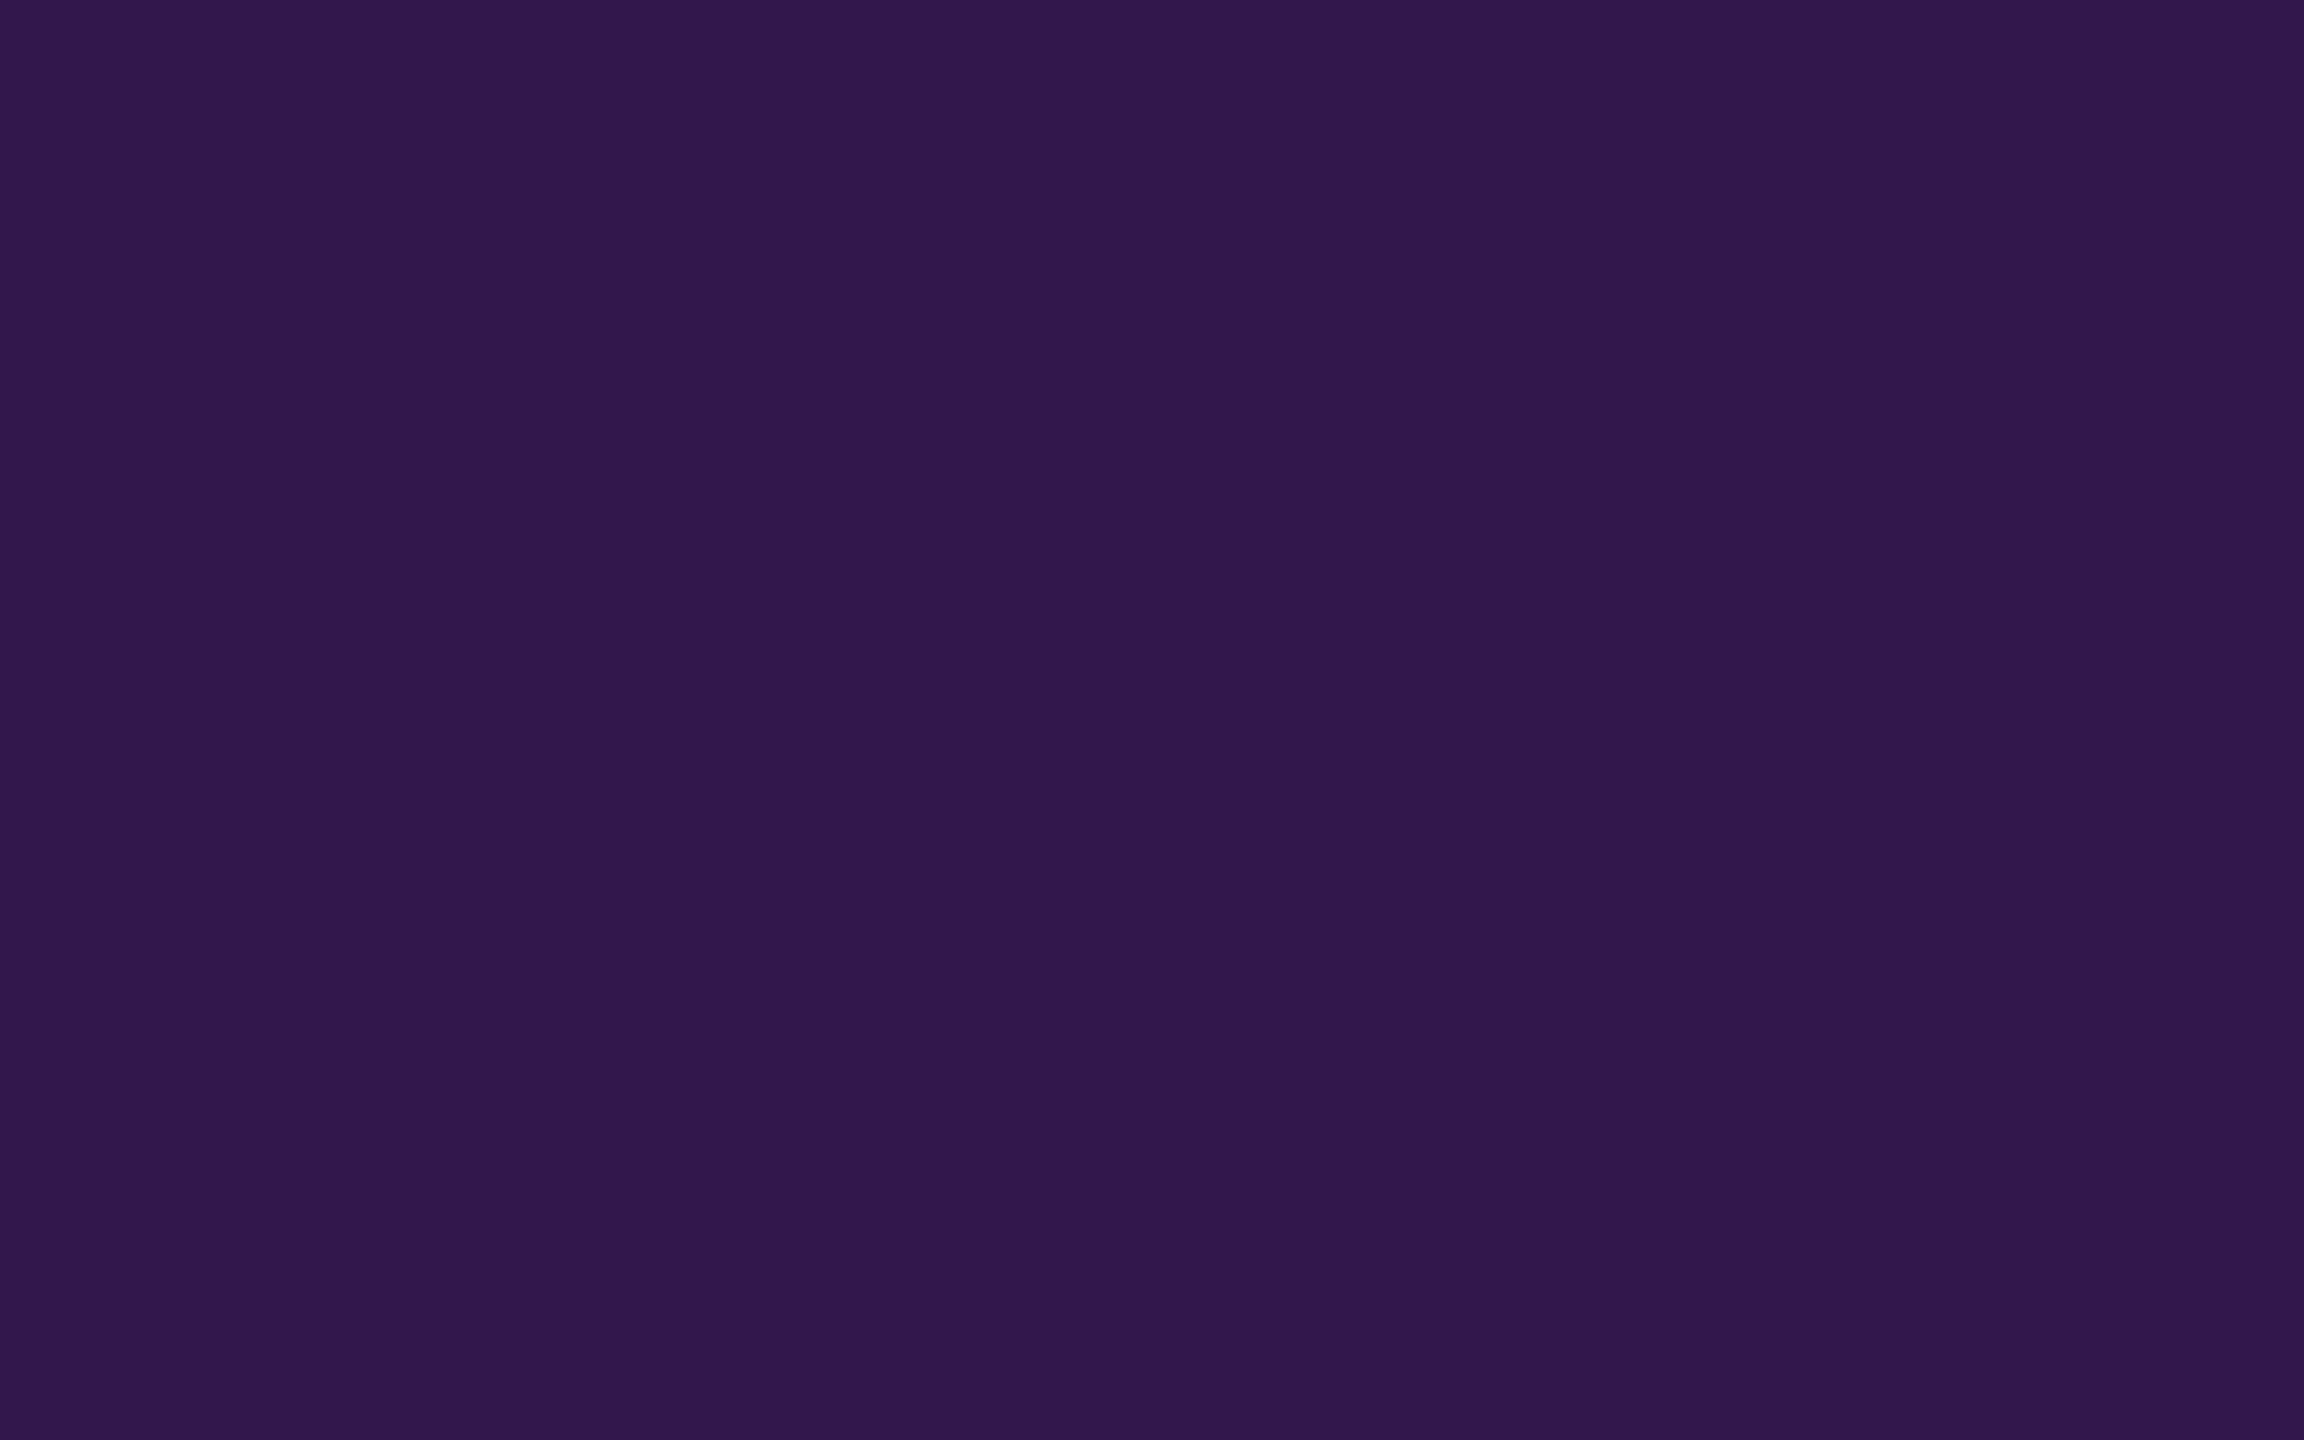 2304x1440 Russian Violet Solid Color Background